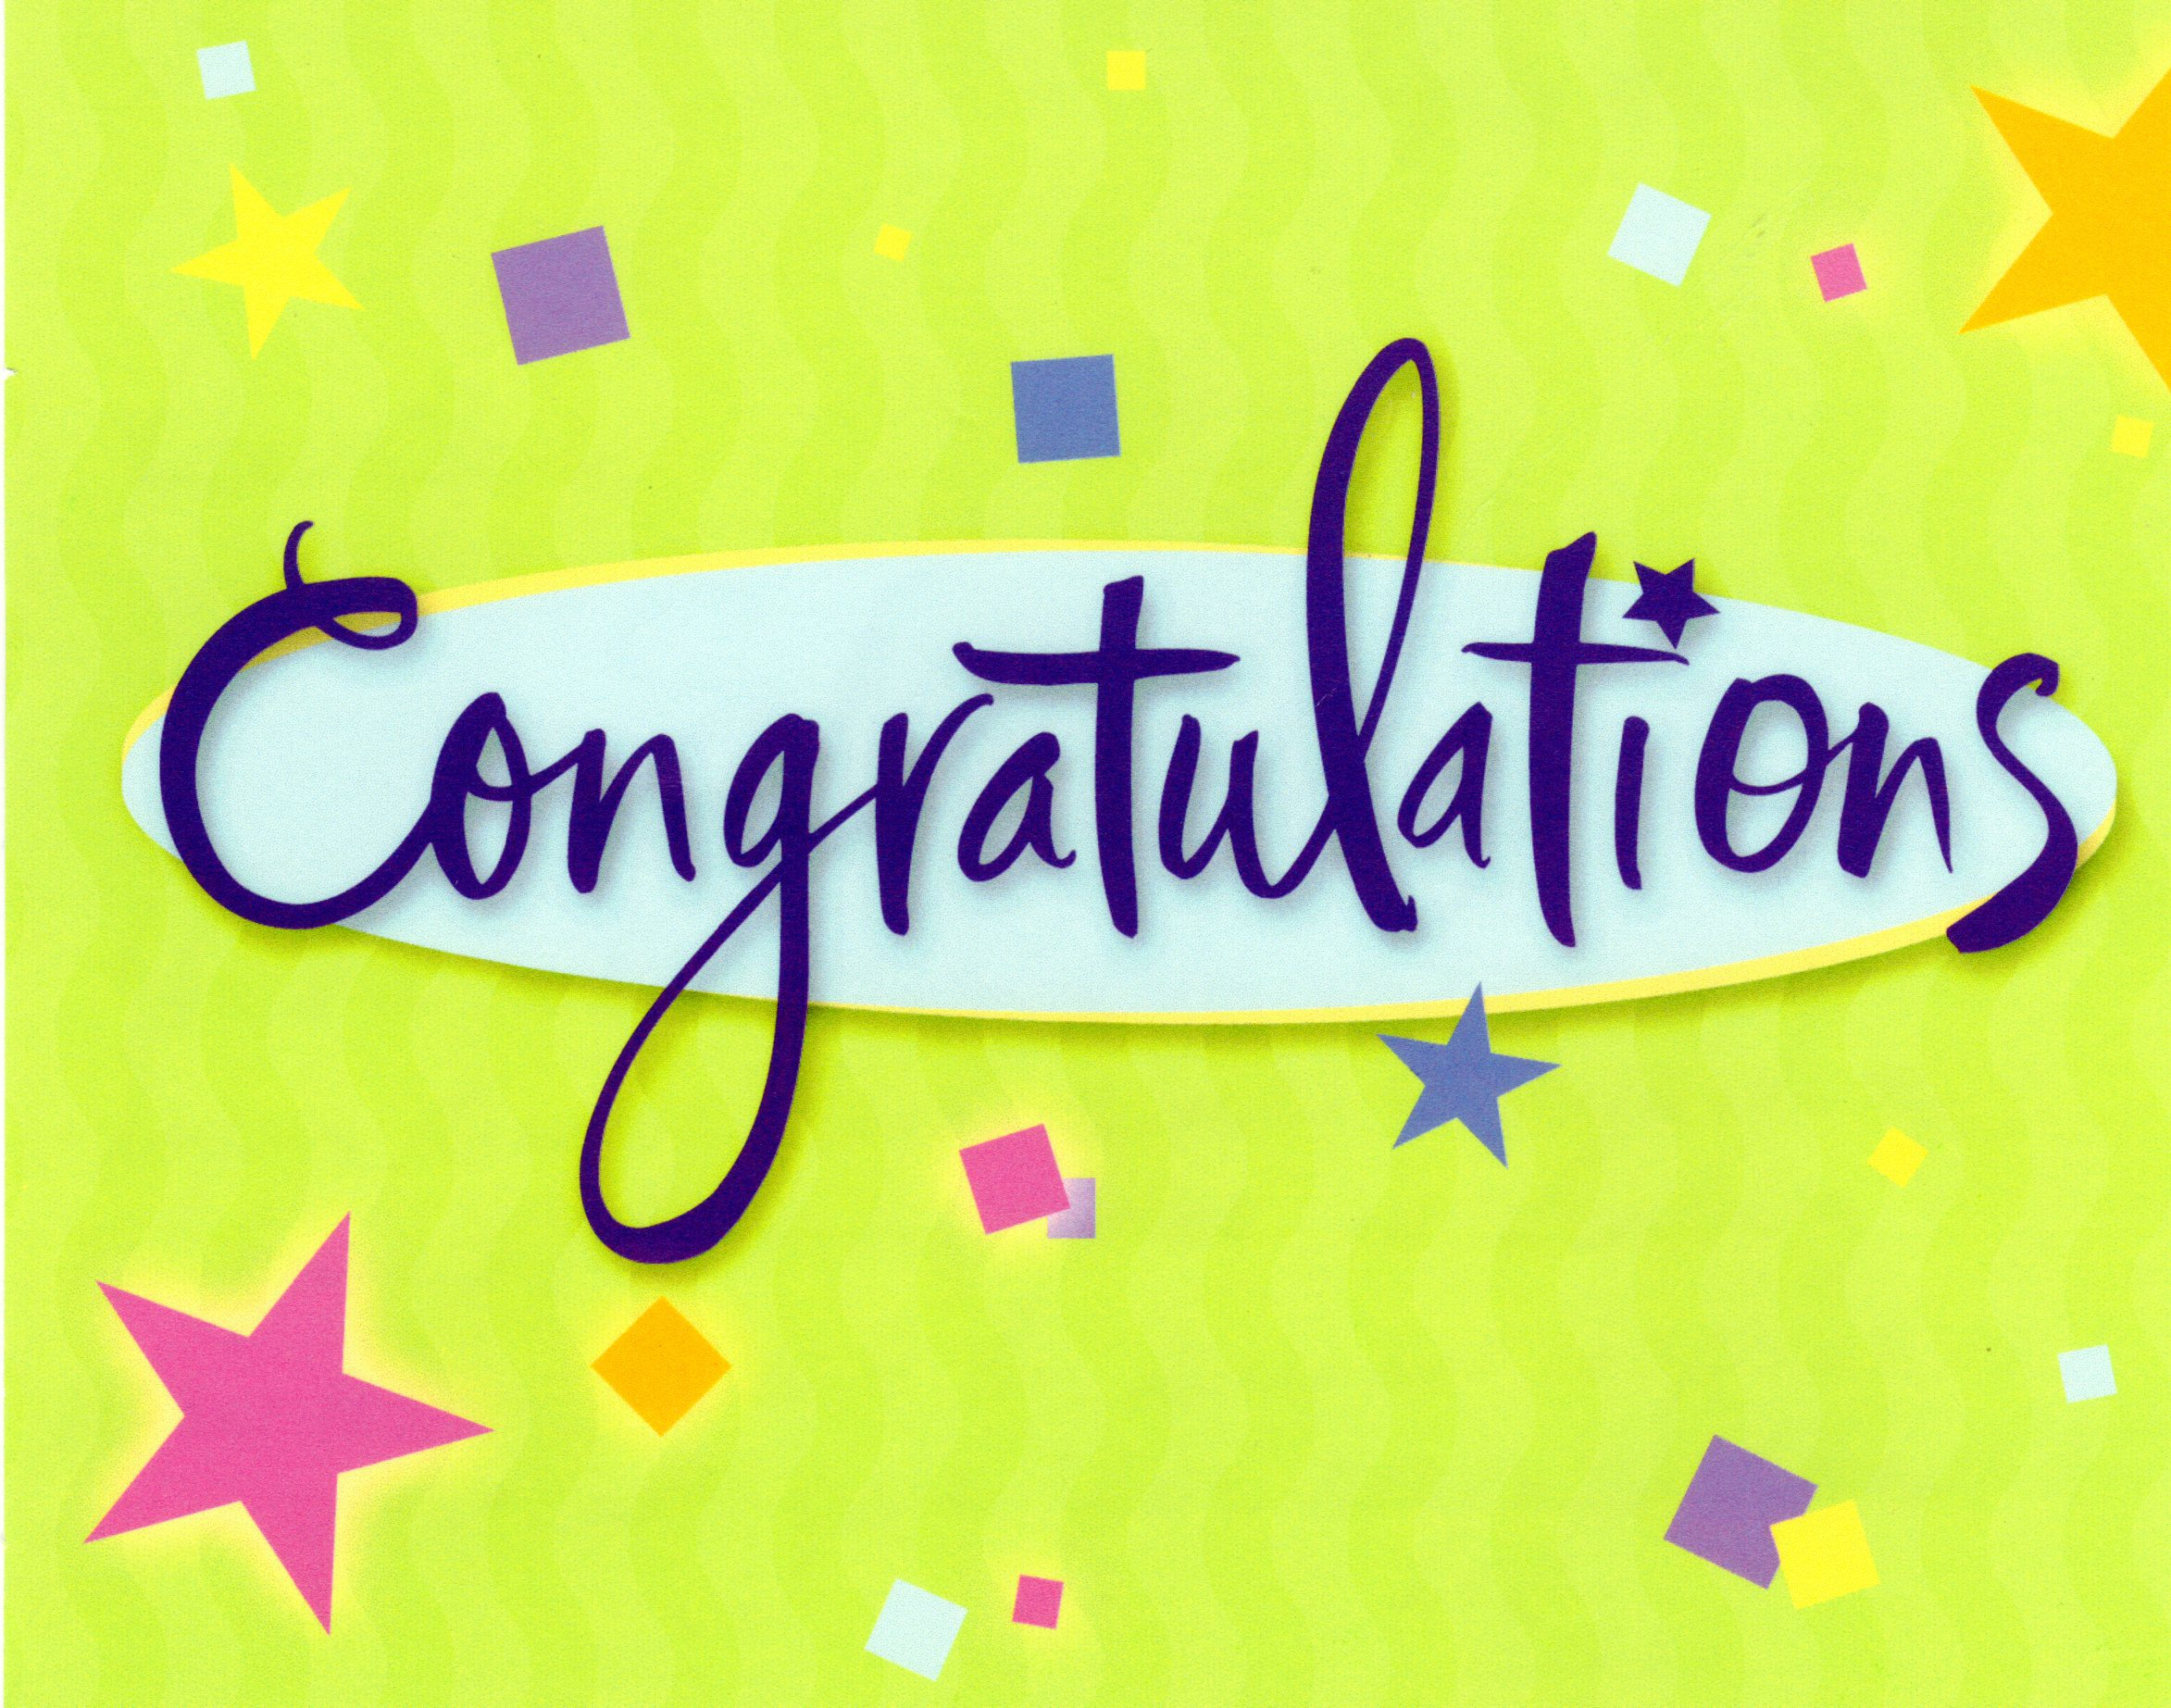 Congratulations-new-job-clipart-3.jpg